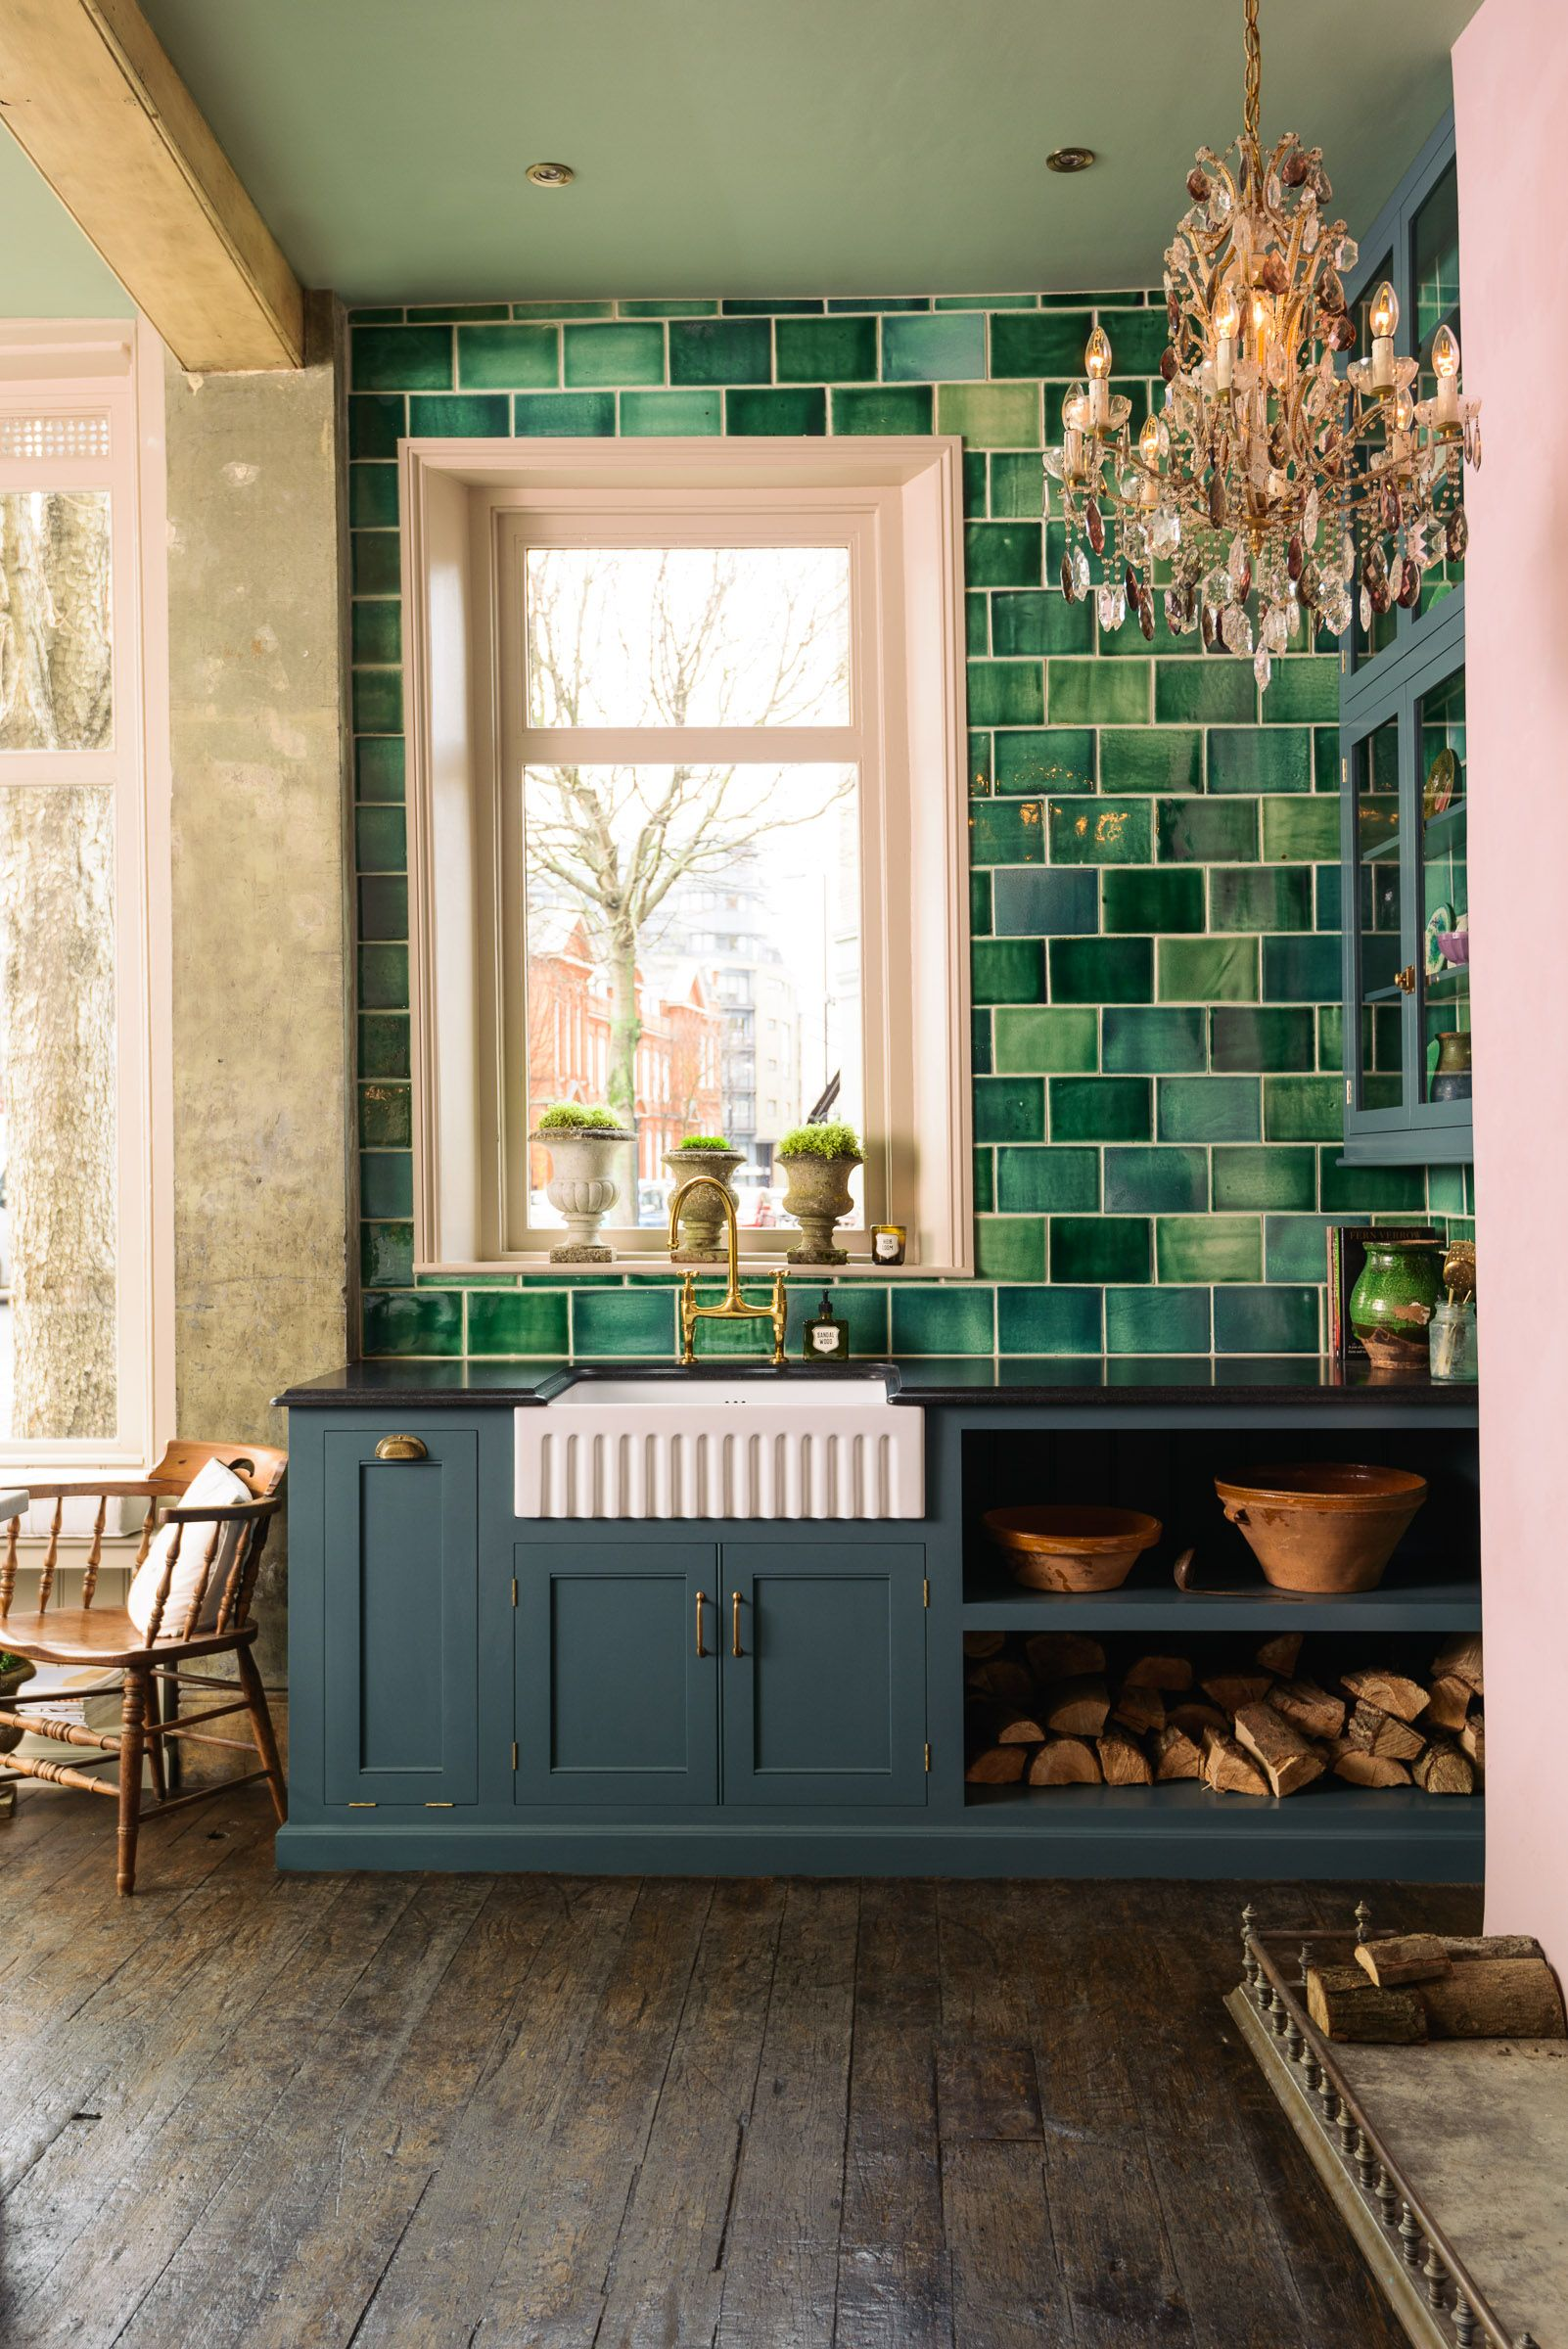 Emily brooks uncovers the bathroom basics that are vital to know - Find This Pin And More On Prim Kitchen